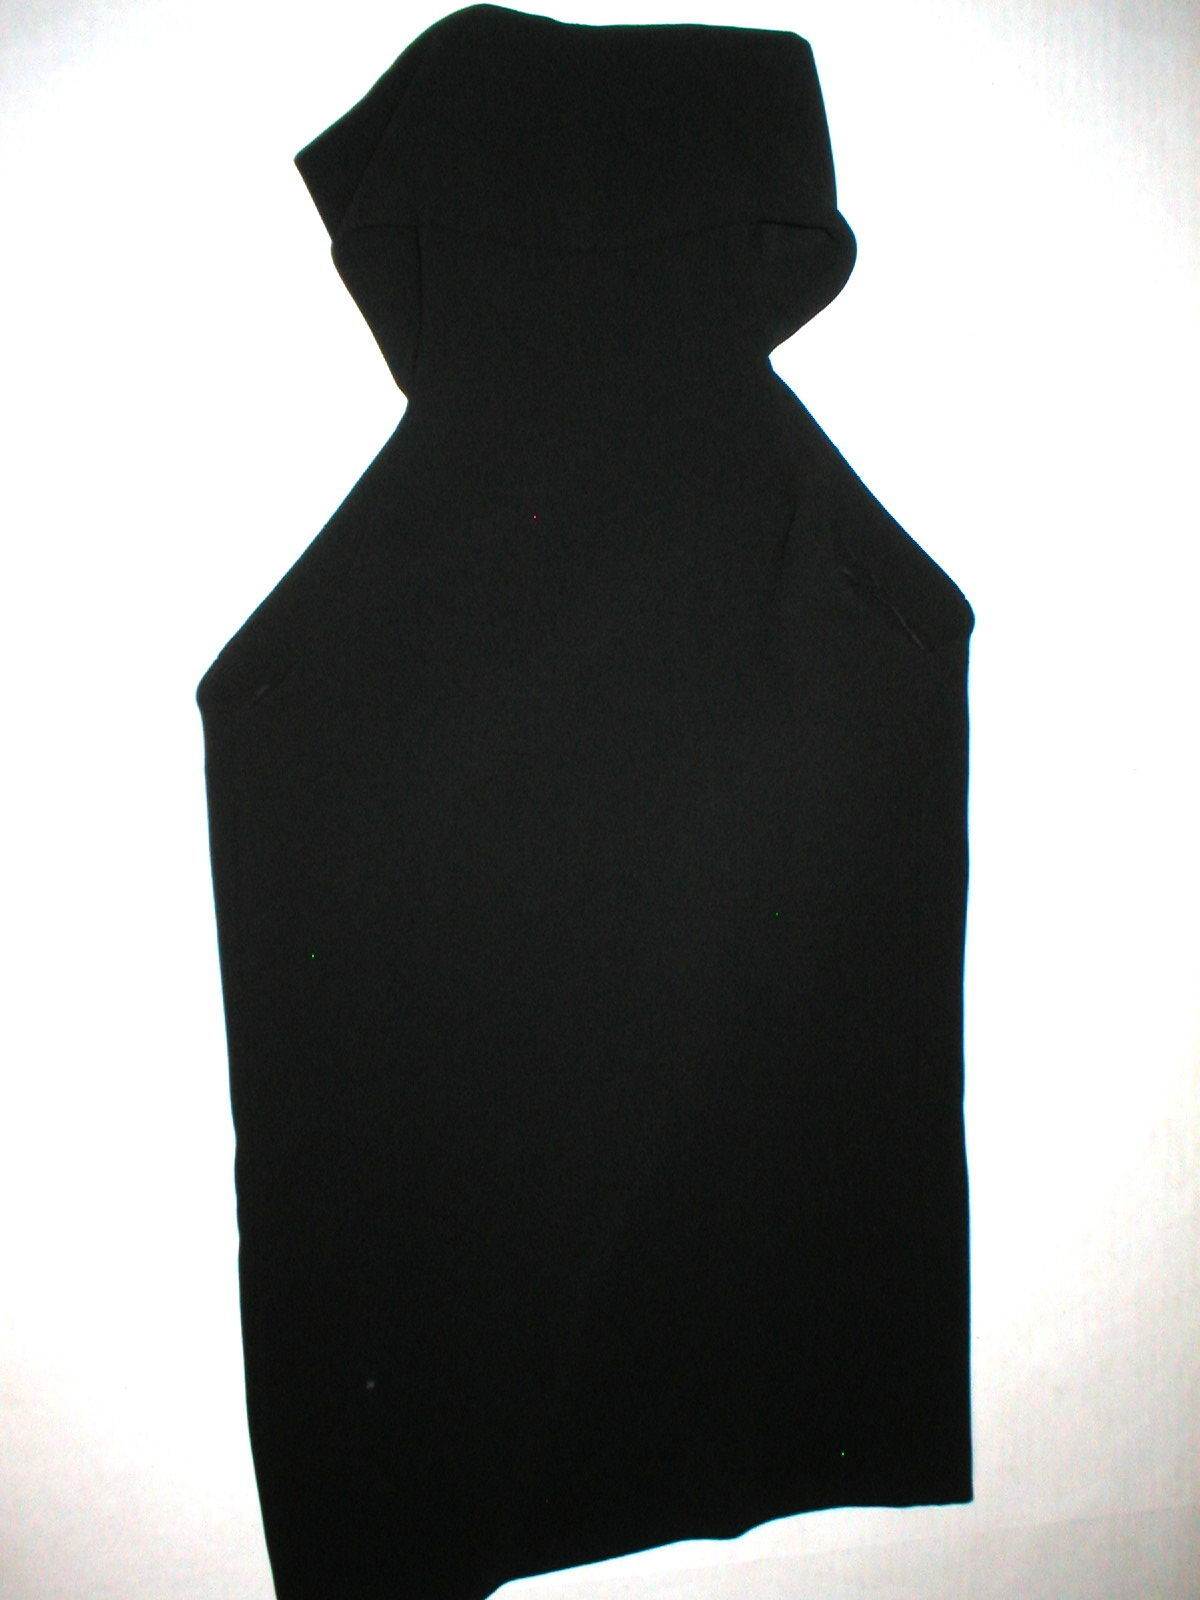 New NWT Womens 4 6 Designer France 36 Anthony Vaccarello Black Top Cut Outs